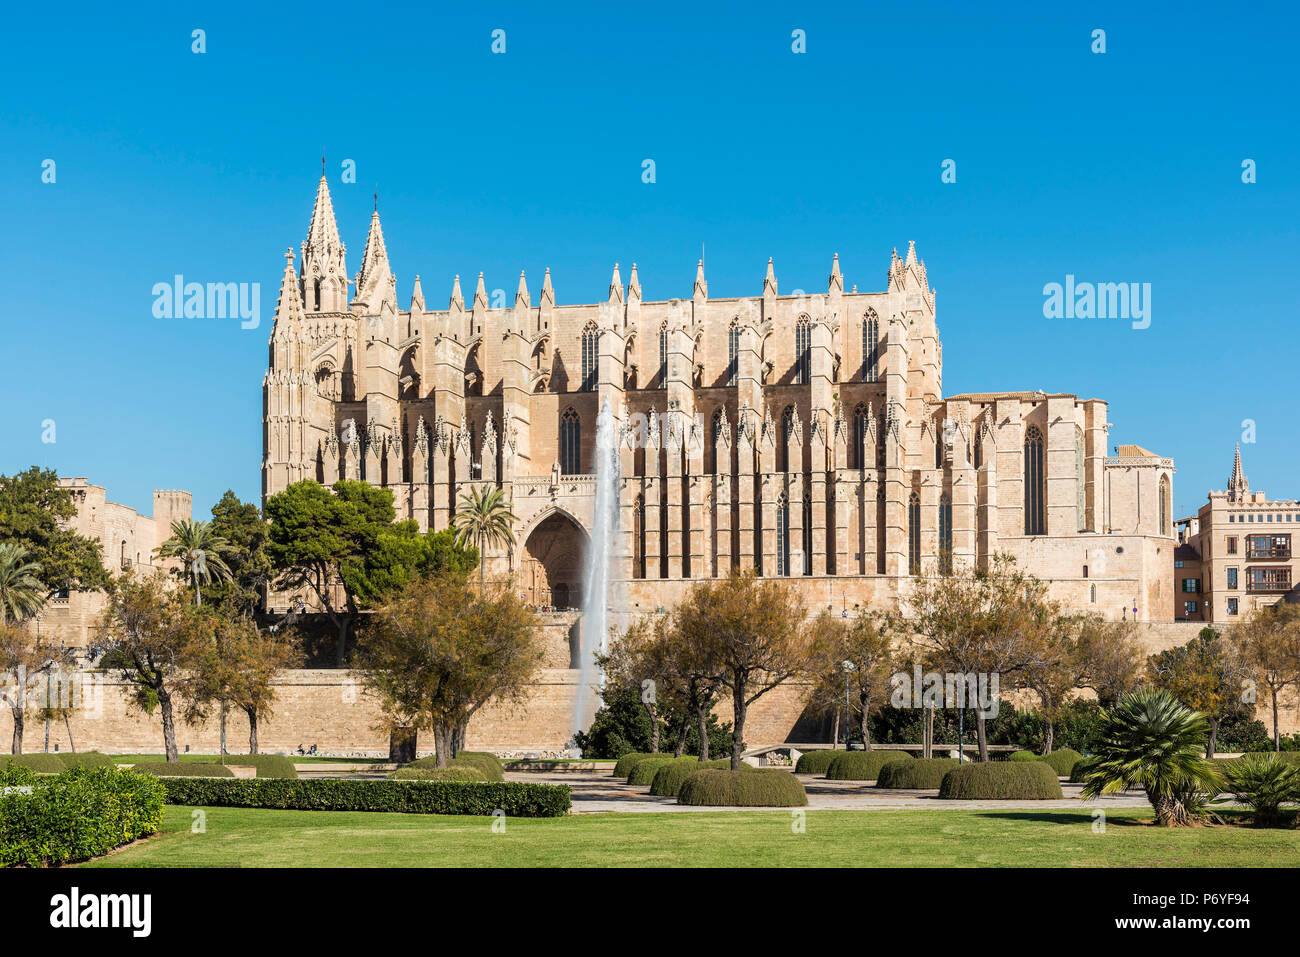 The Cathedral of Santa Maria of Palma or Catedral de Santa Maria de Palma de Mallorca, Palma, Majorca, Balearic Islands, Spain - Stock Image